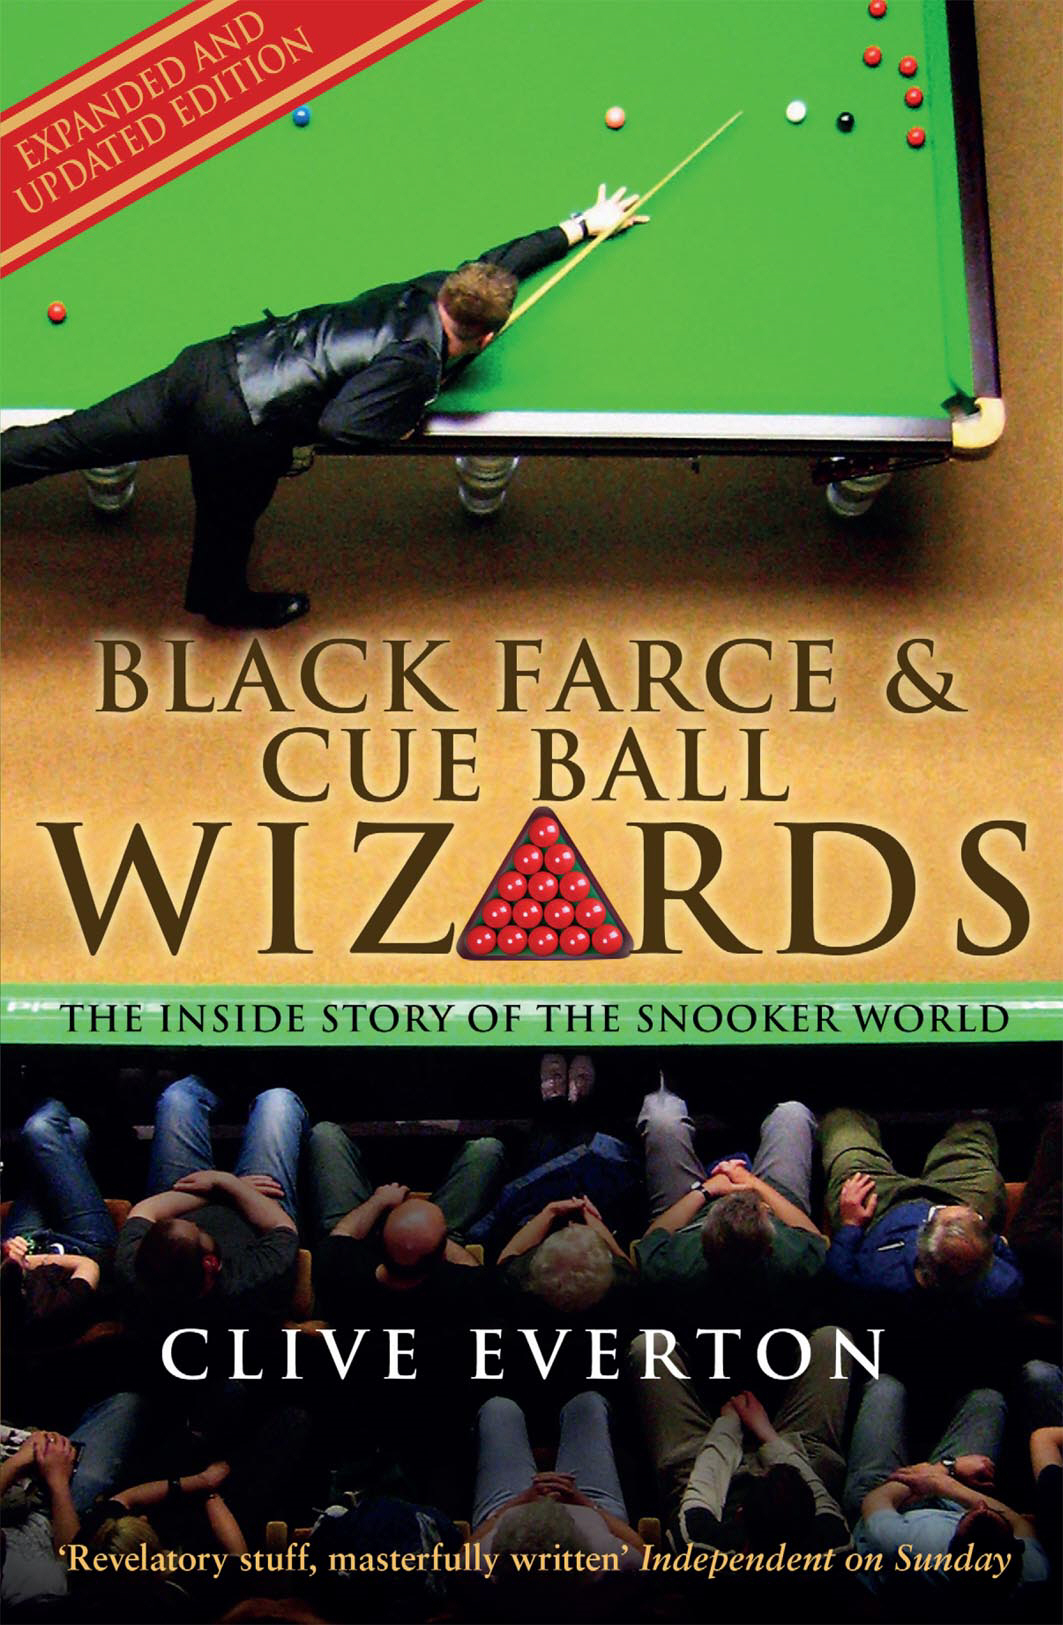 Black Farce and Cue Ball Wizards The Inside Story of the Snooker World